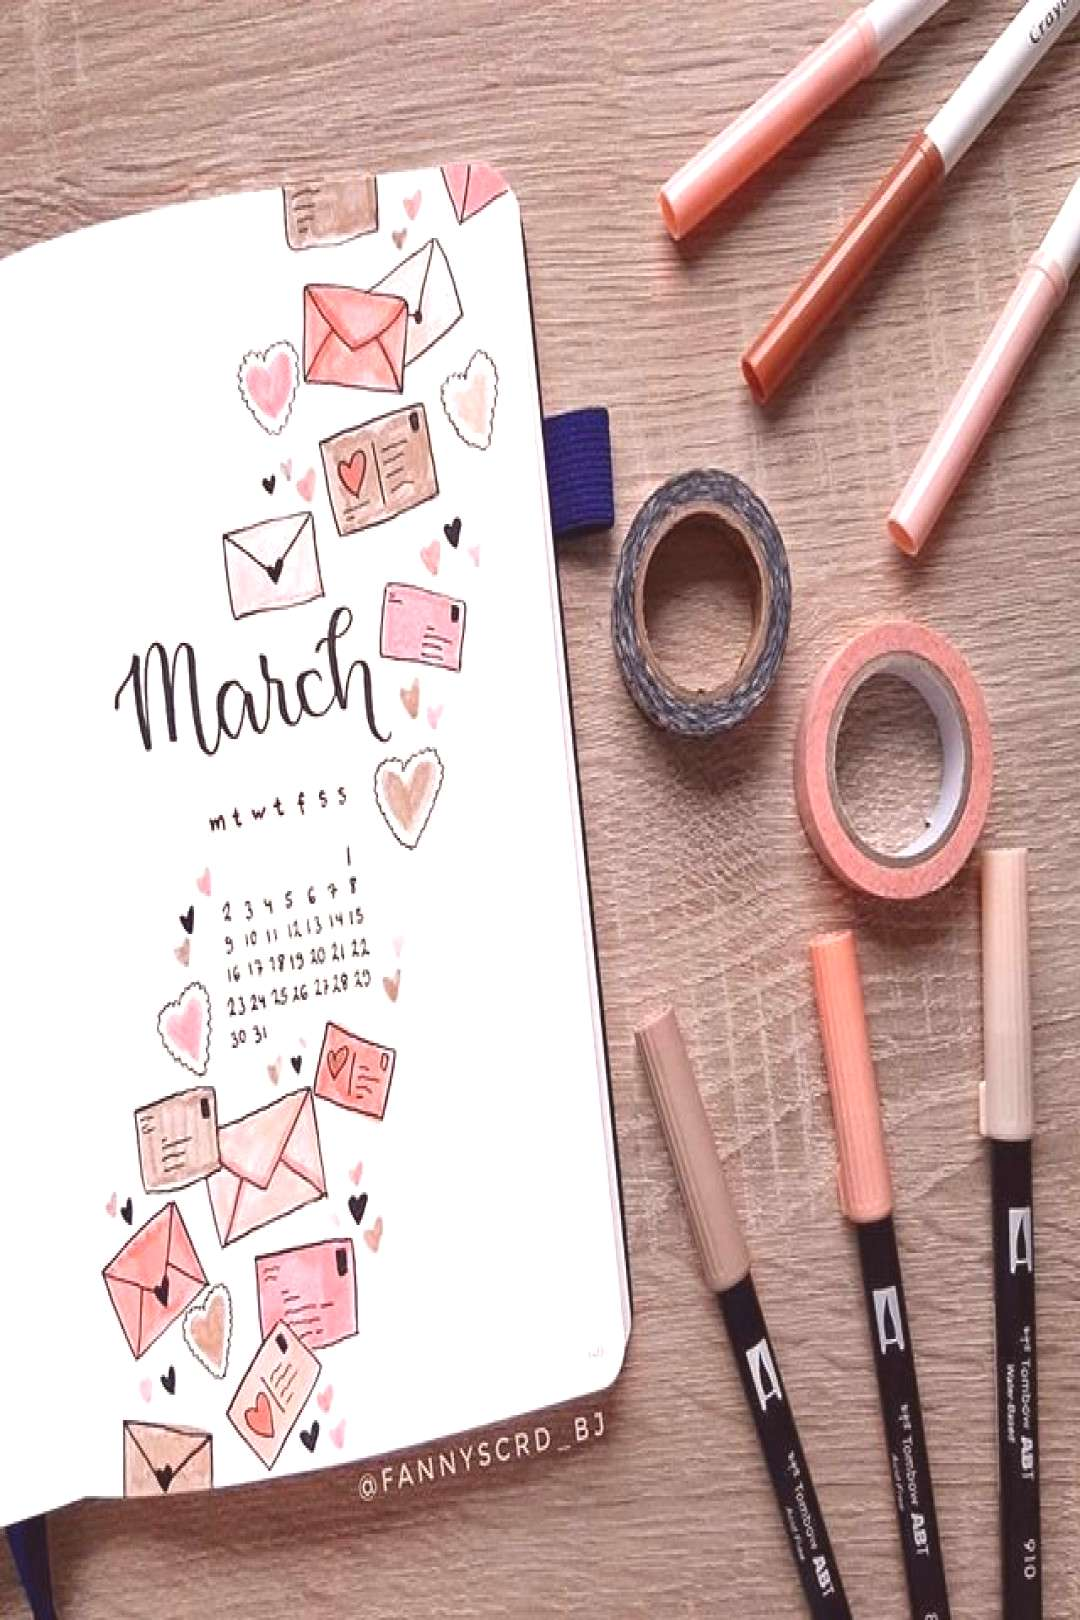 This aesthetic and creative bullet journal page cover idea is created by artist @fannyscrd_bj on IG